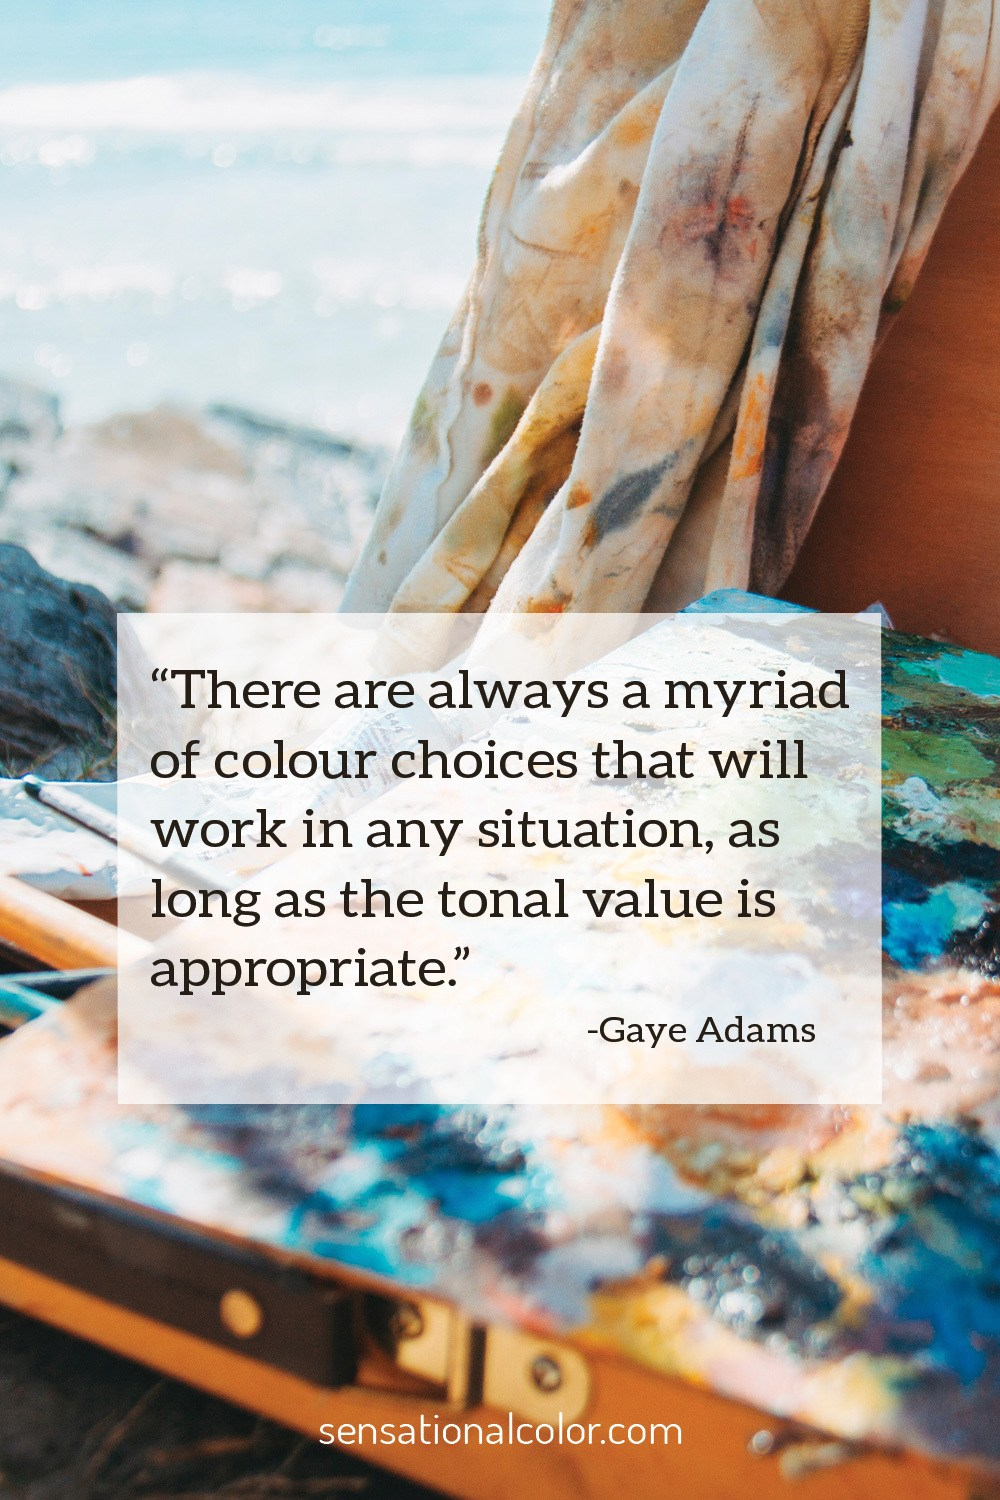 """There are always a myriad of colour choices that will work in any situation, as long as the tonal value is appropriate."" - Gaye Adam"